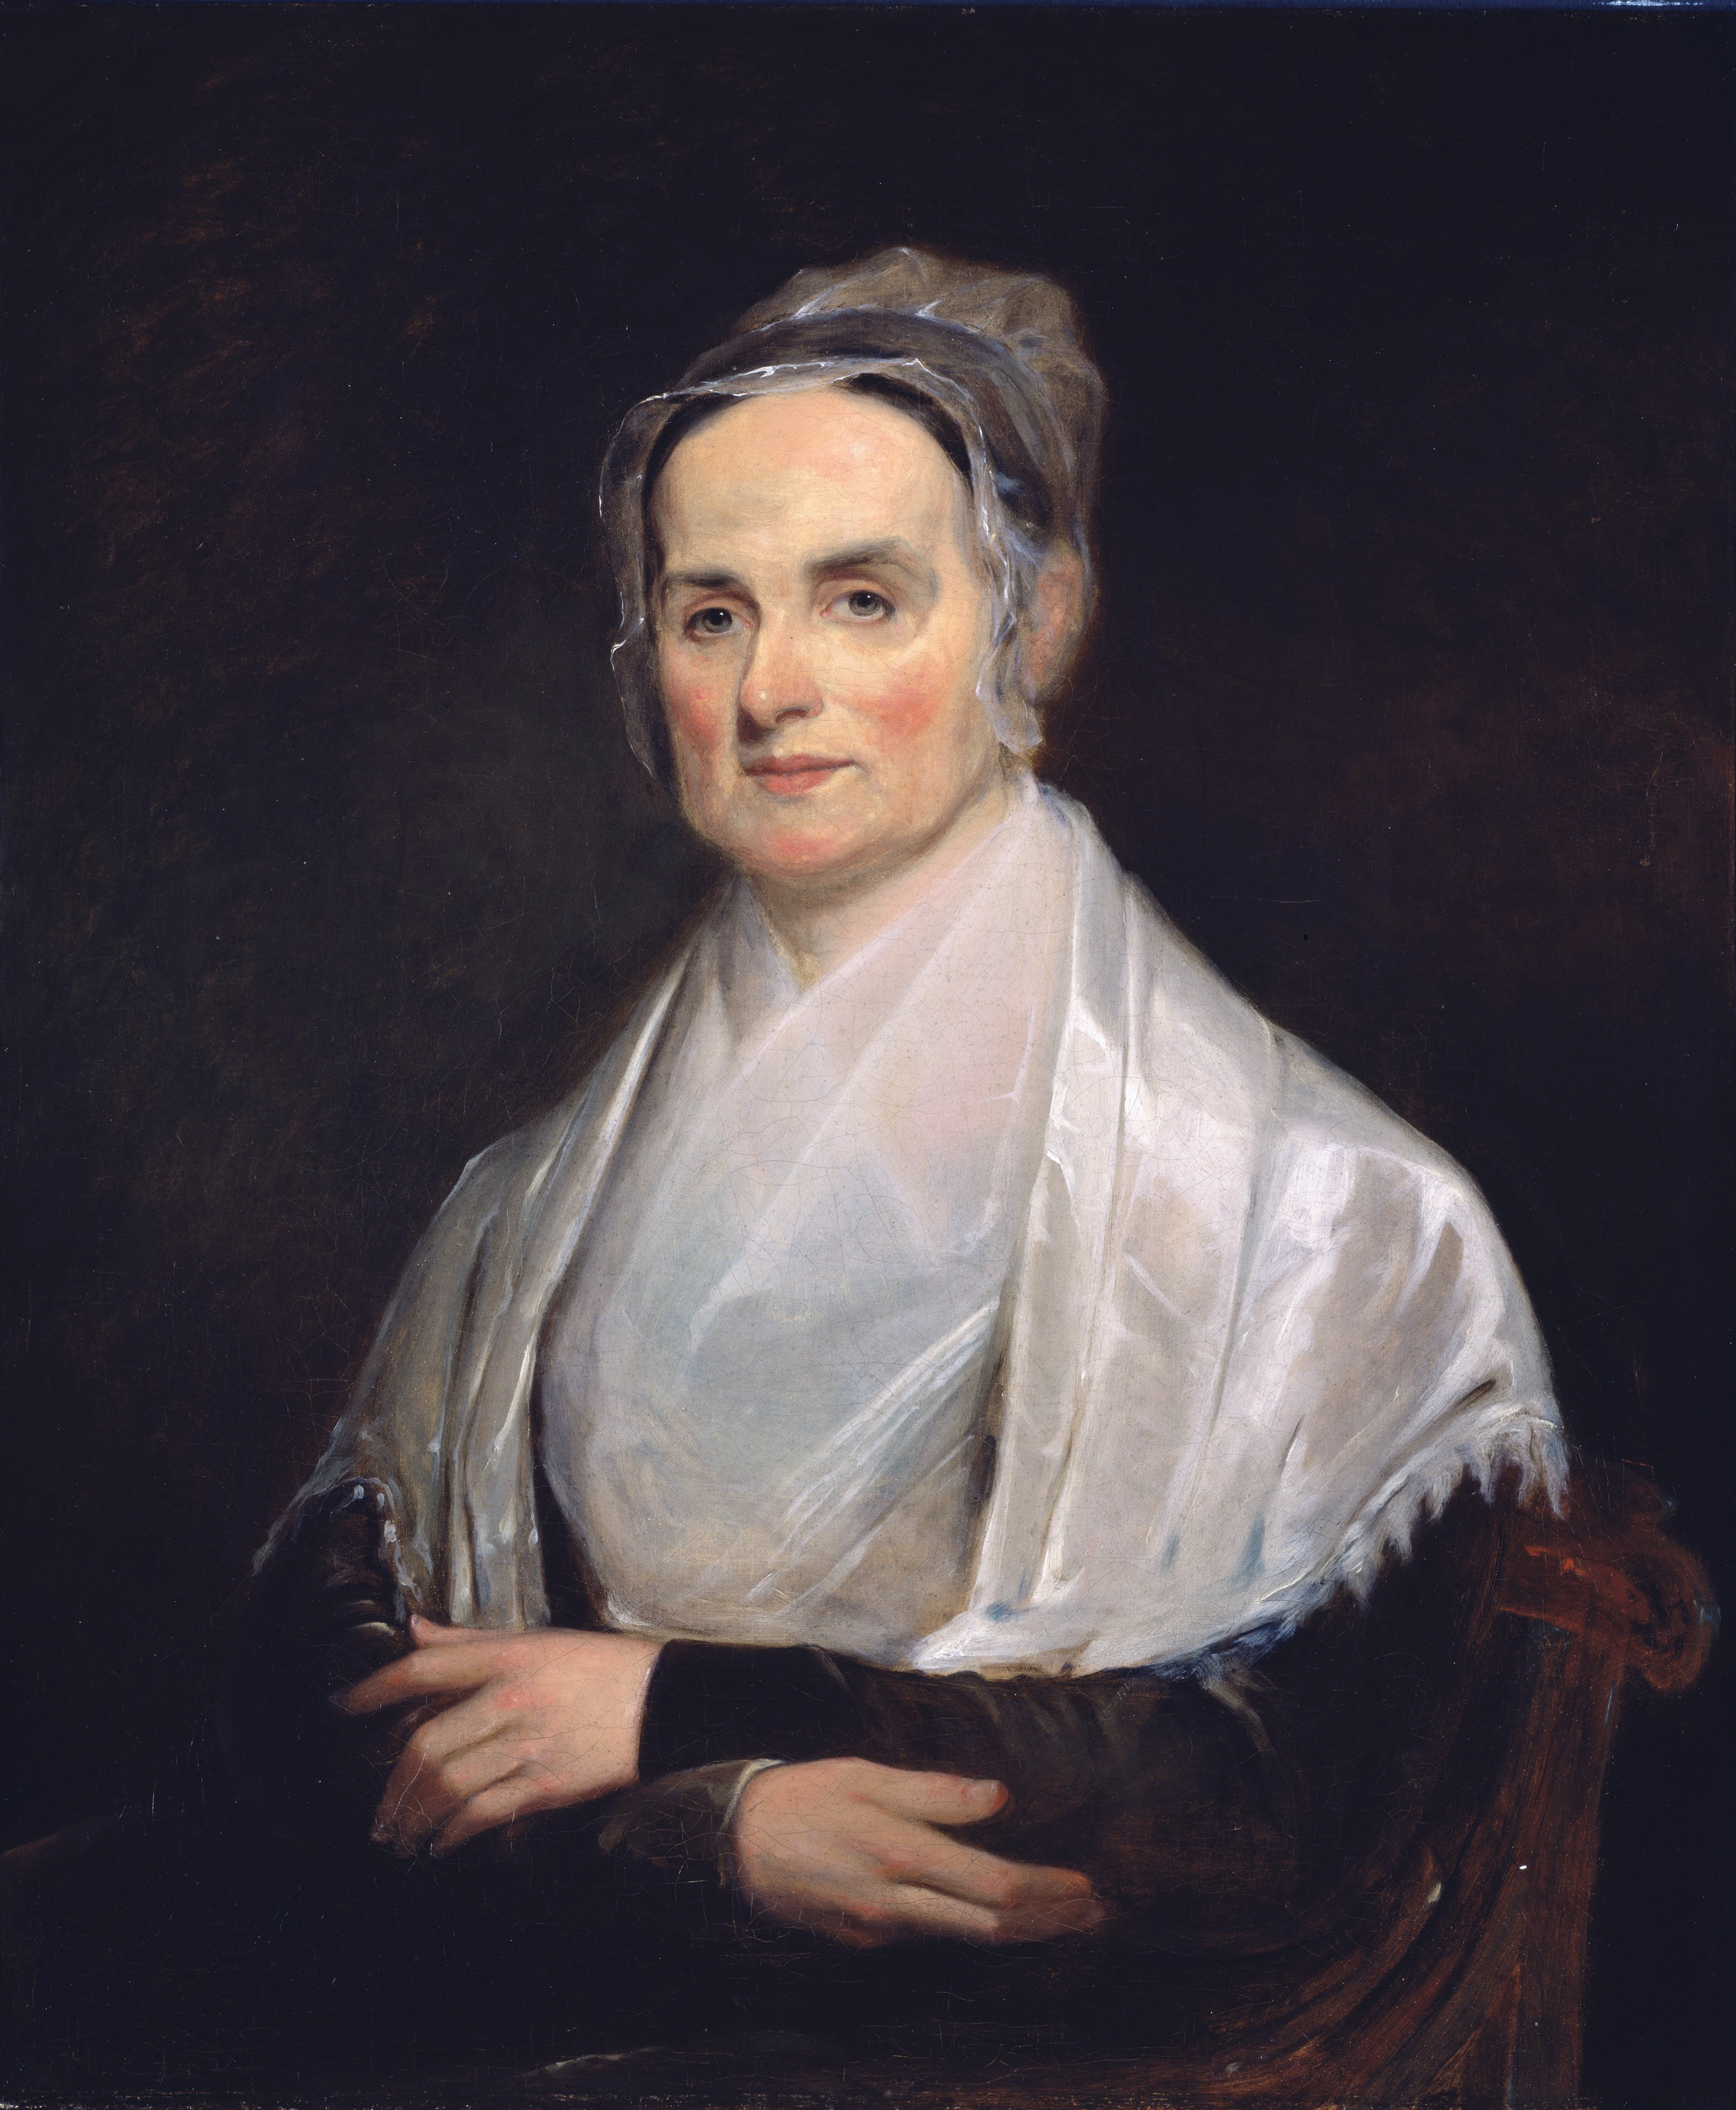 Lucretia Mott at the age of 49 (1842), at the [[National Portrait Gallery (United States)|National Portrait Gallery]] in [[Washington, D.C.]]